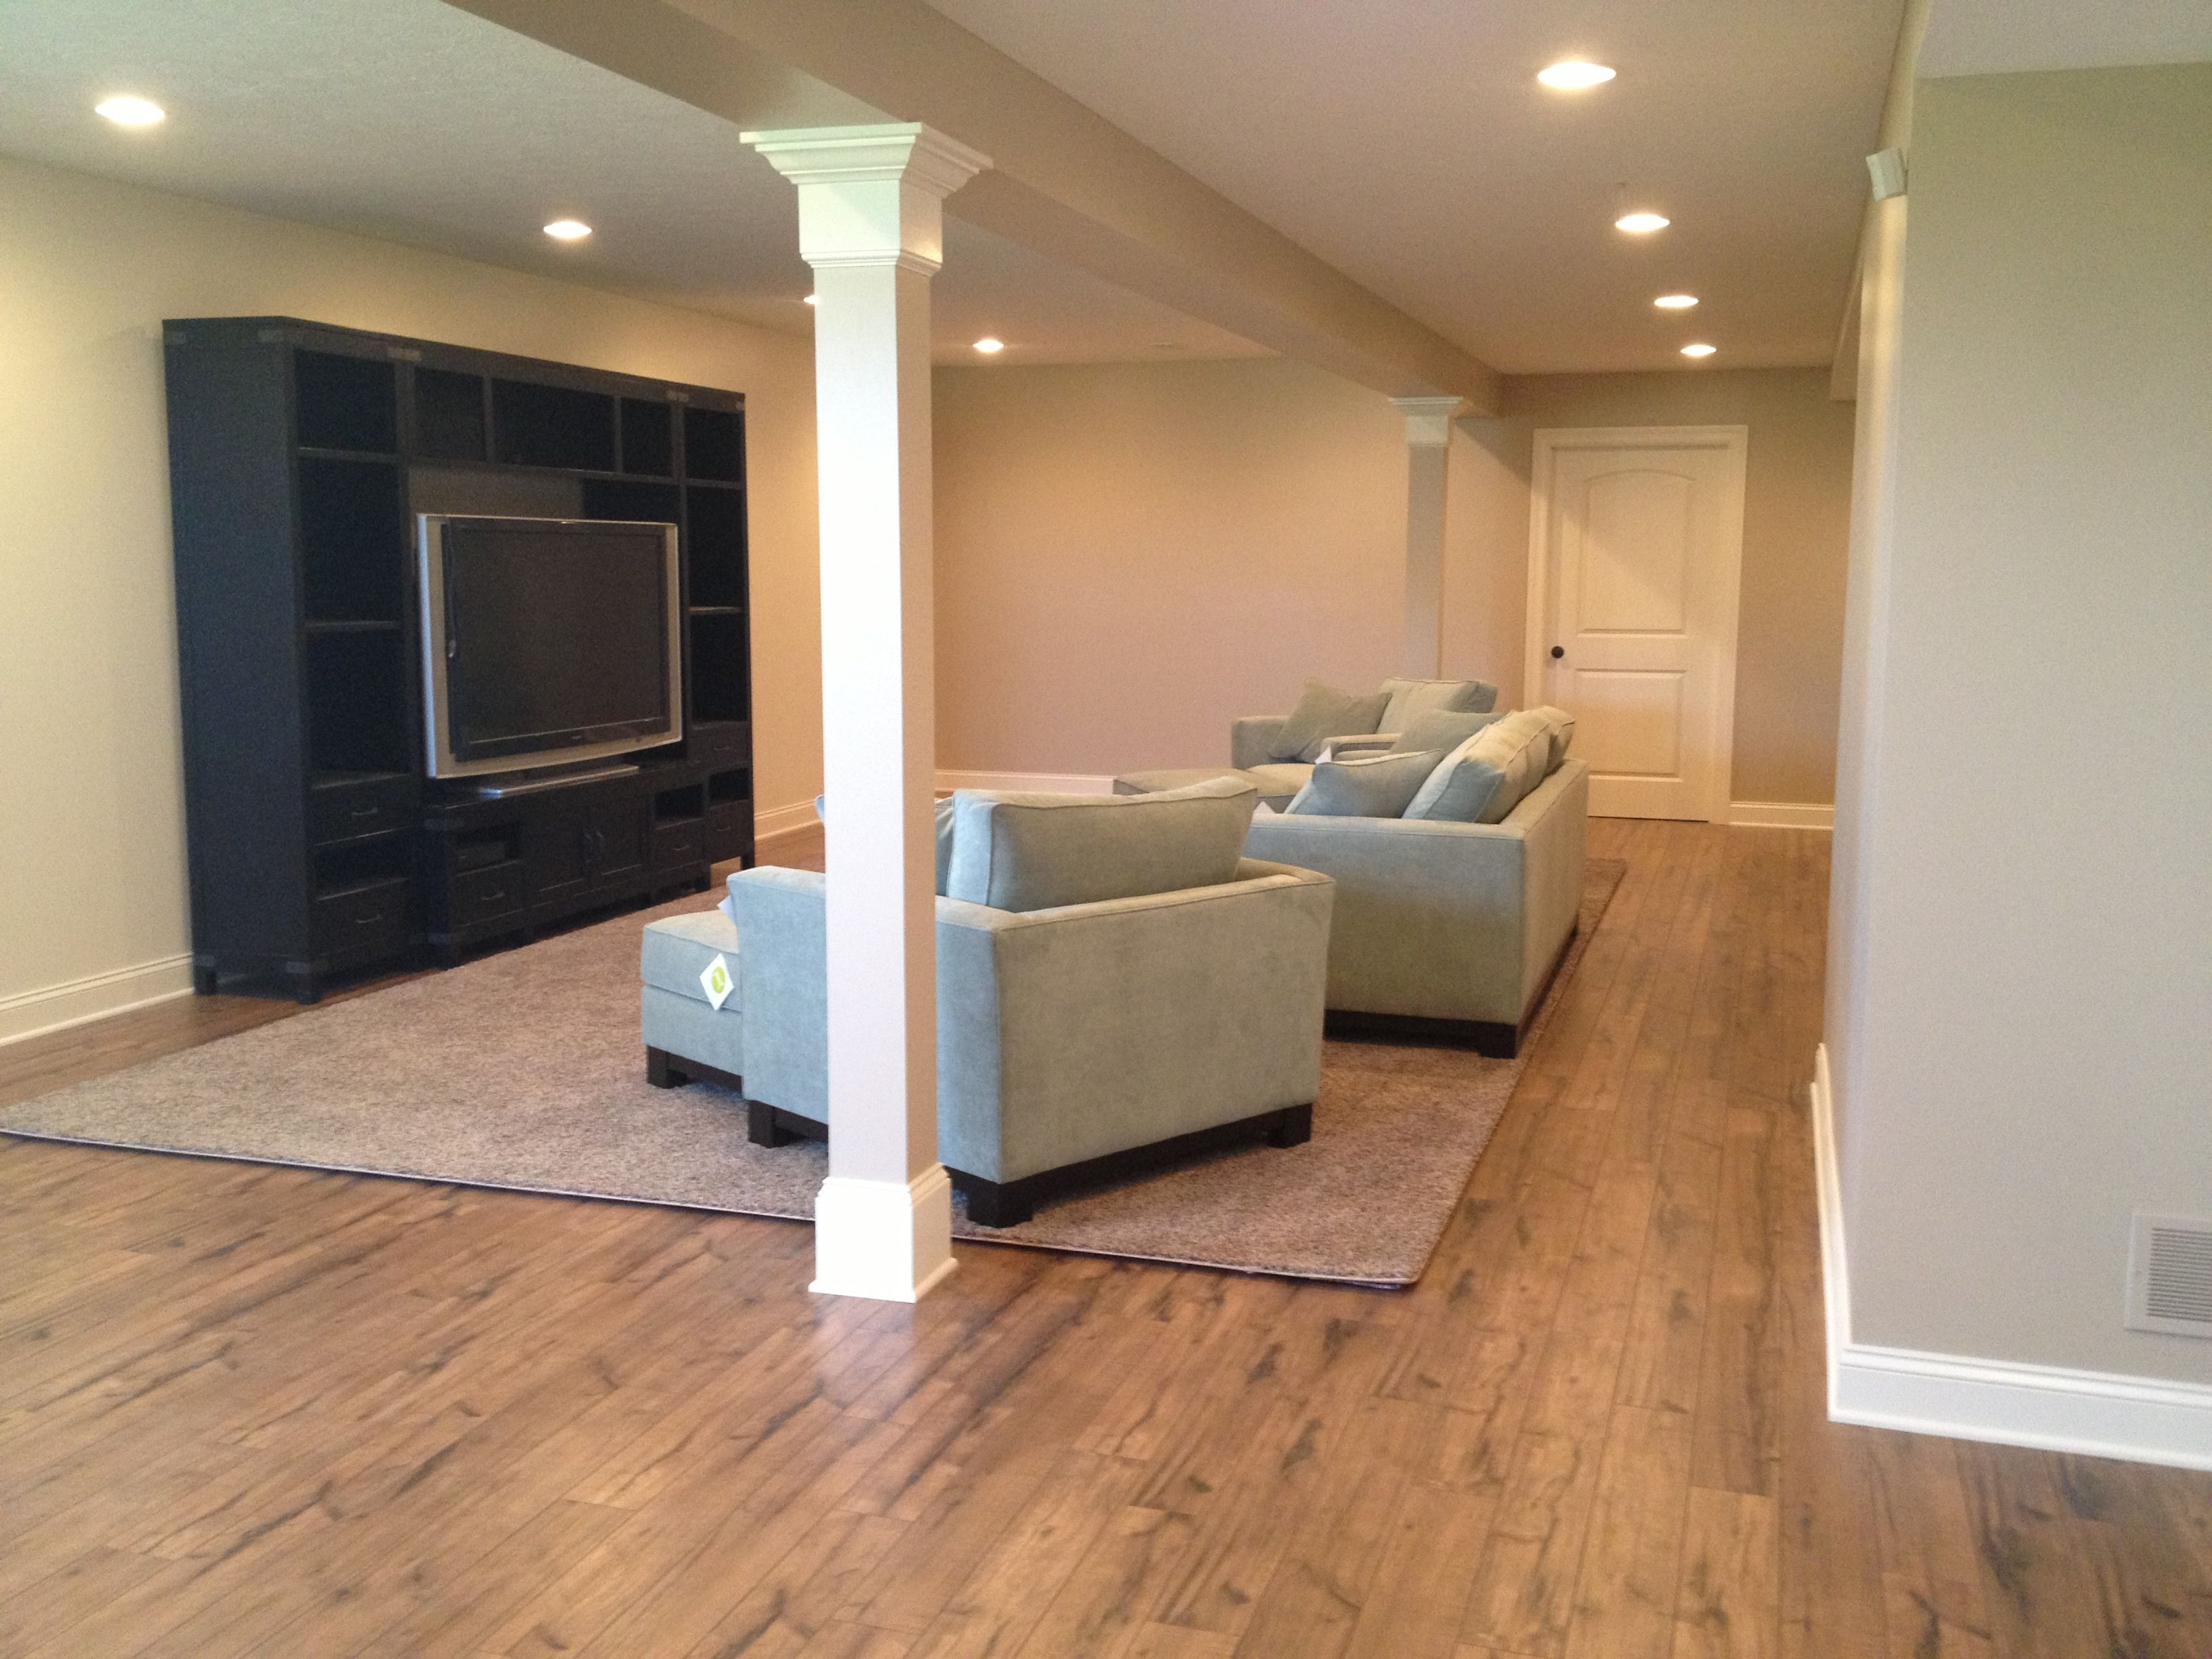 New Basement With Rustic Laminate Flooring Laminate Flooring Basement Basement Flooring Best Flooring For Basement